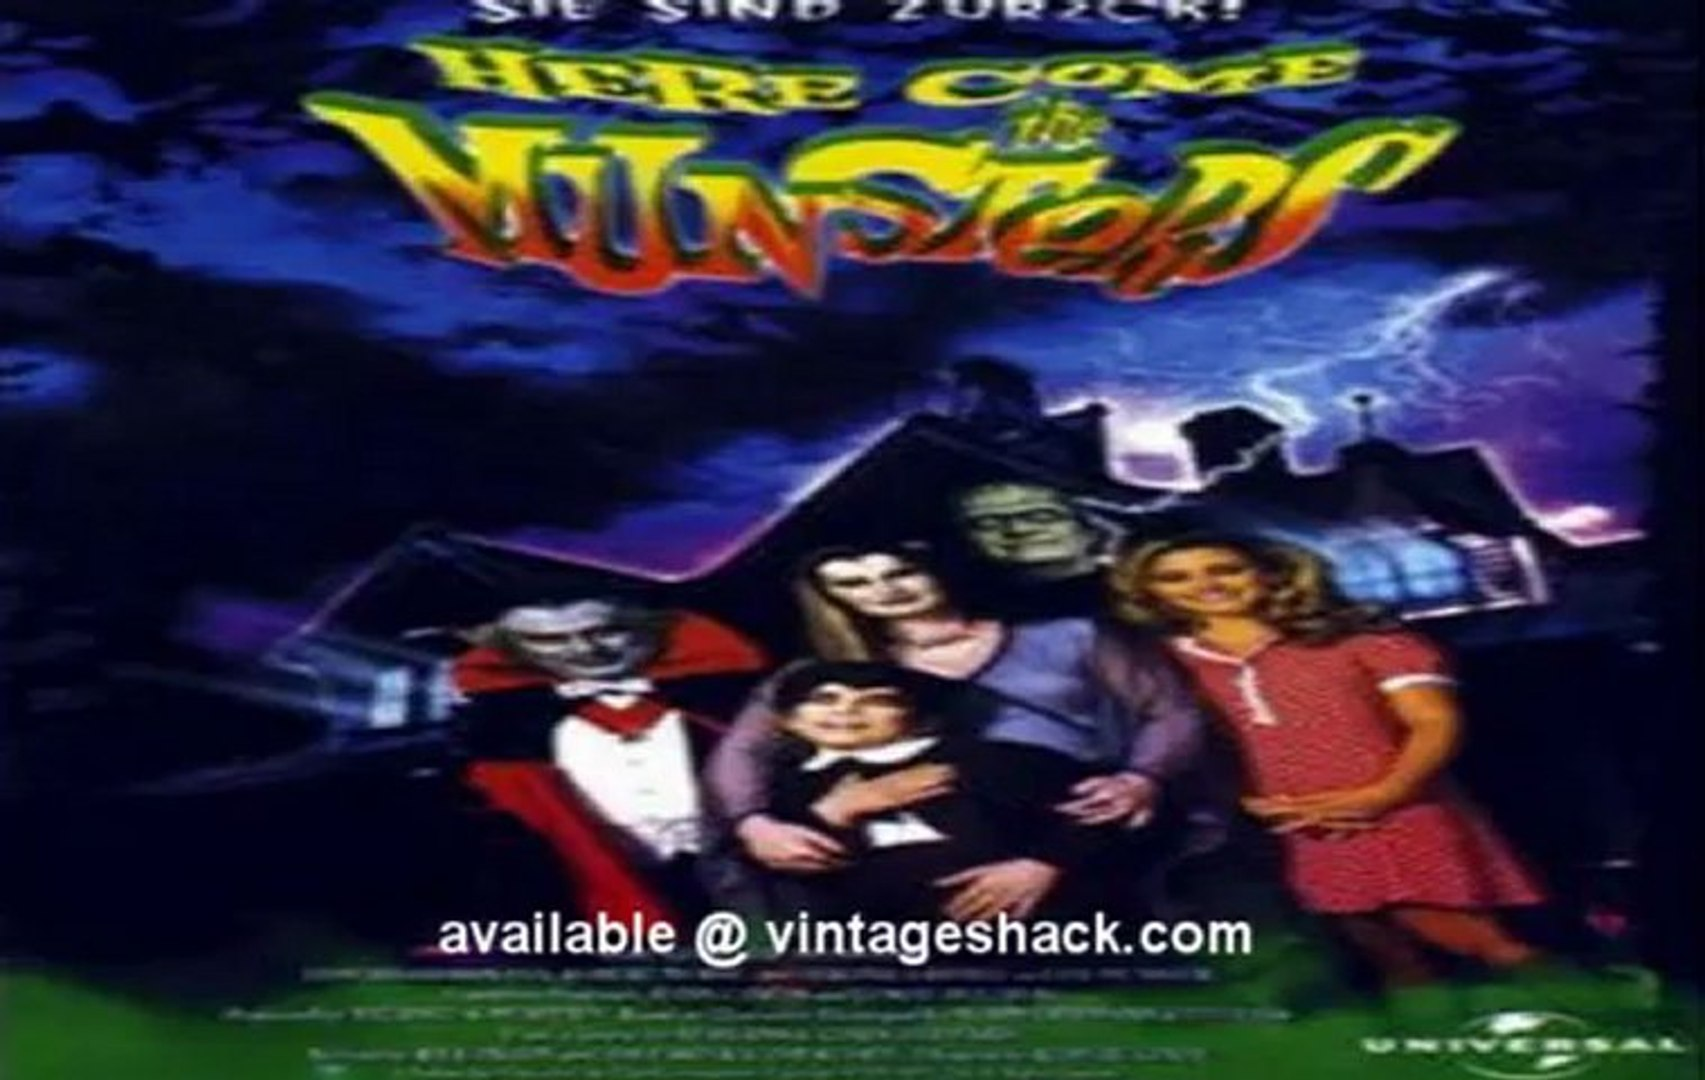 Here come the Munsters (Trailer)